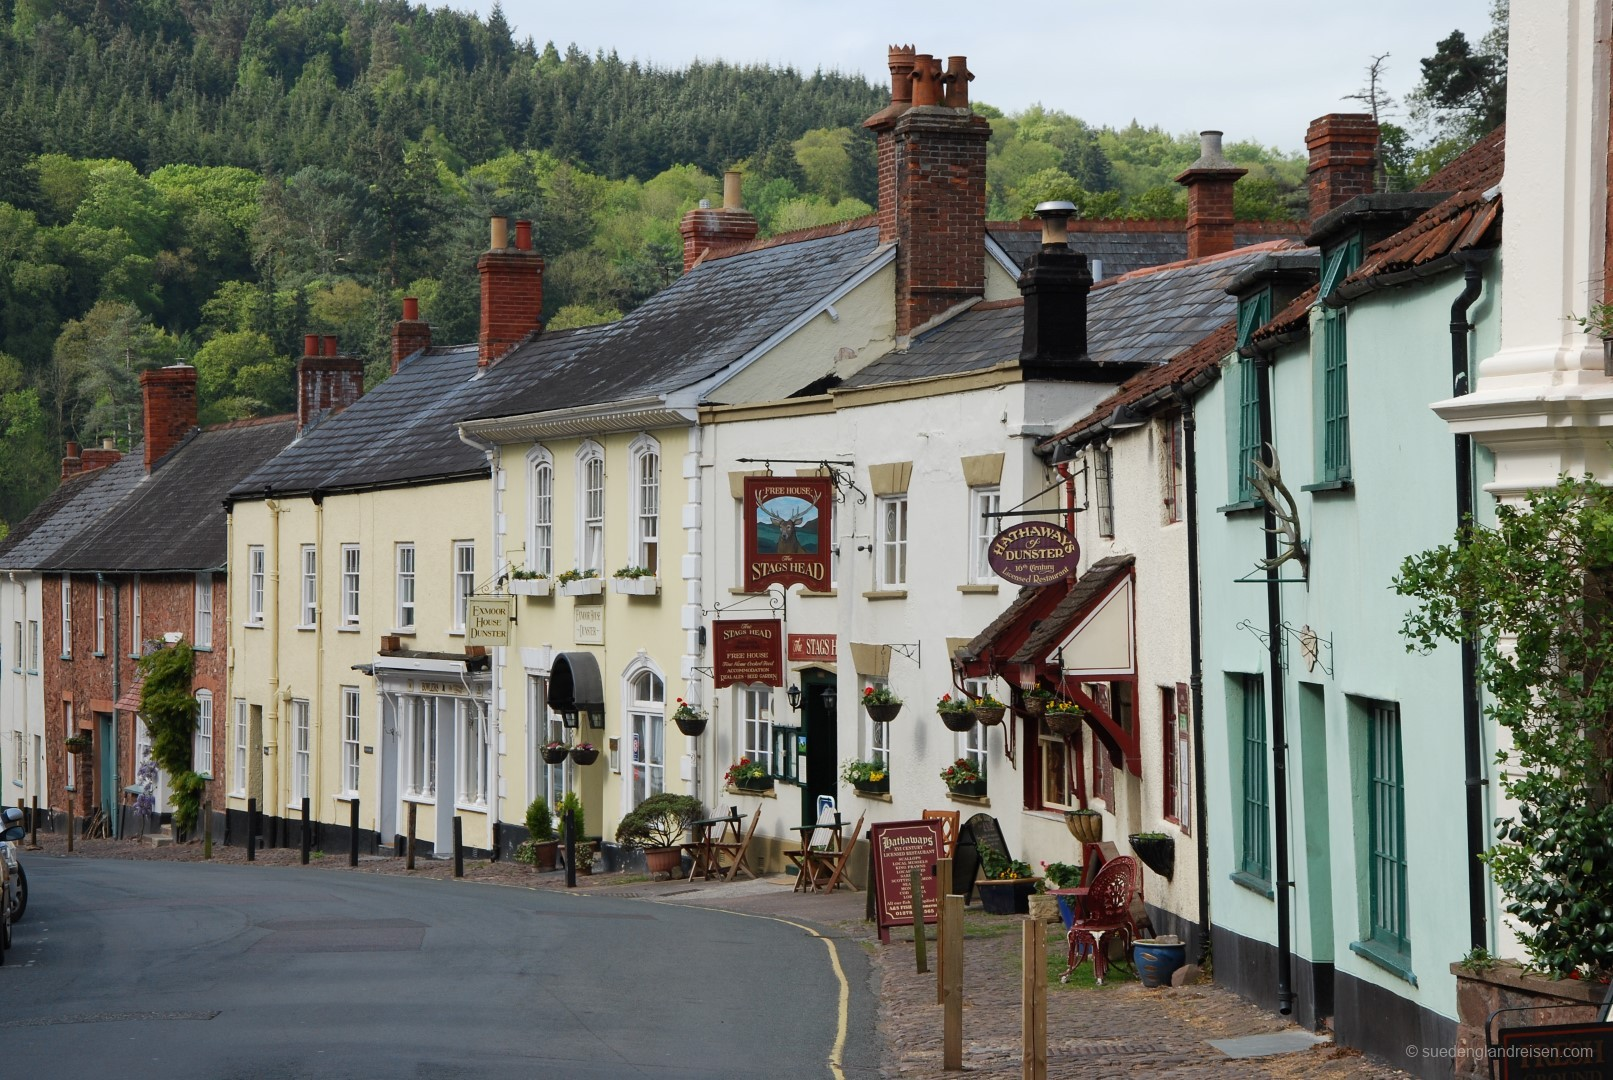 Dunster in Somerset